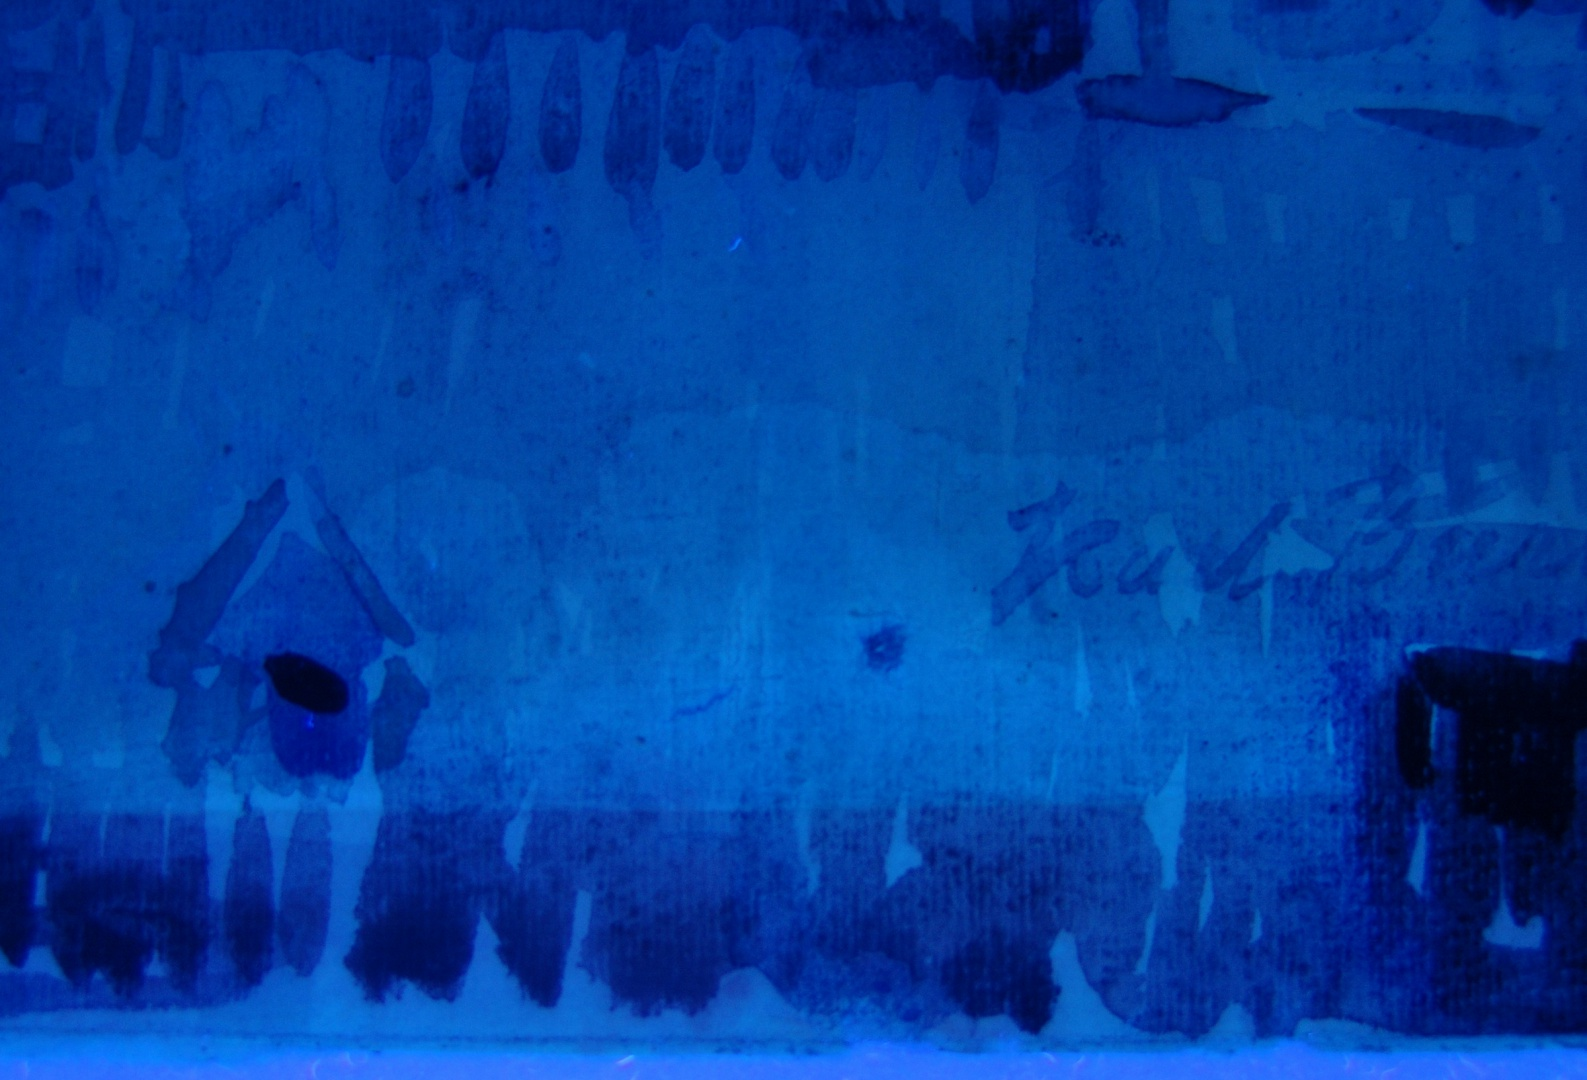 ill 3. Detail photo. Watercolour Tallinn by K. Burman. Photographing in the UV light shows the line of fading clearly.